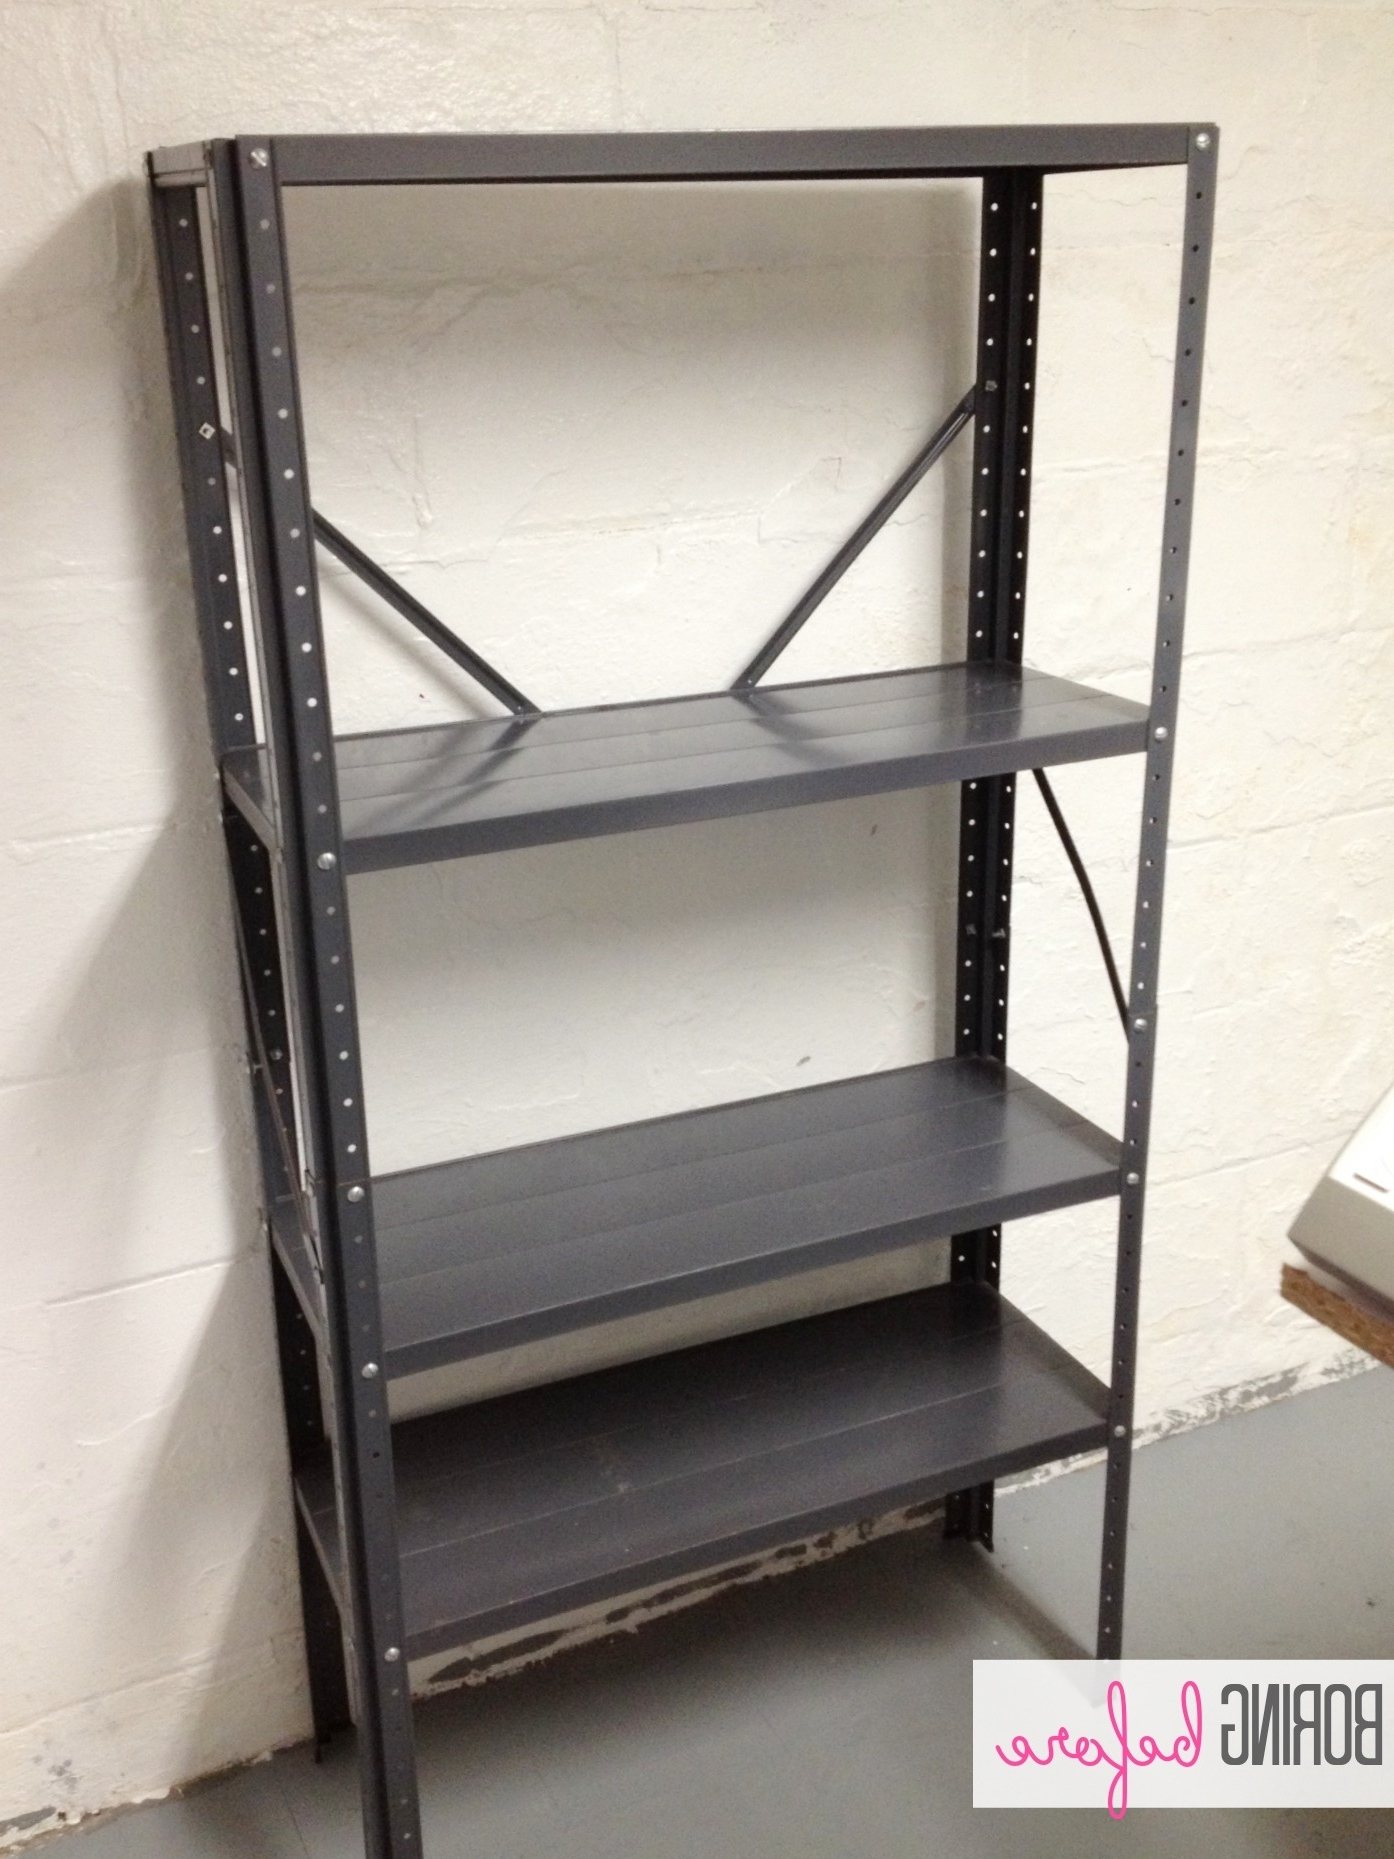 Painted Shelving Units Intended For Preferred Inexpensive Craft Room Shelving – Classy Clutter (View 7 of 15)